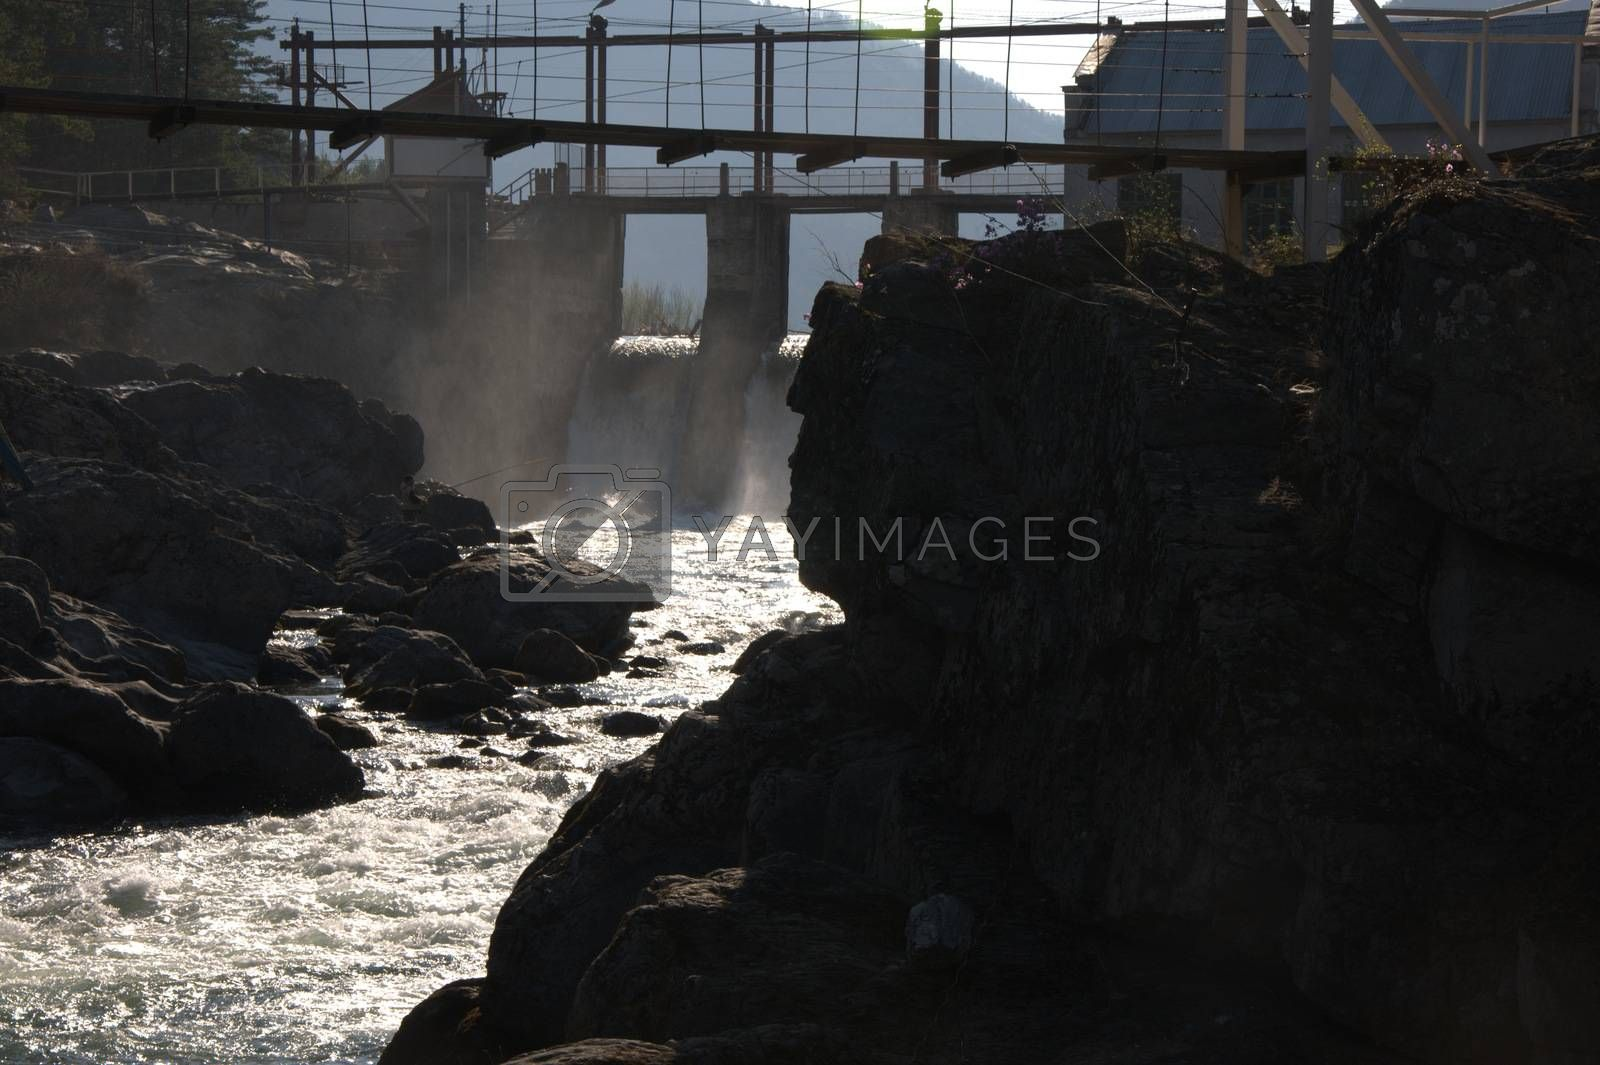 The dam of the old hydroelectric power station and a suspension bridge over a raging mountain river. by Alex Yellow